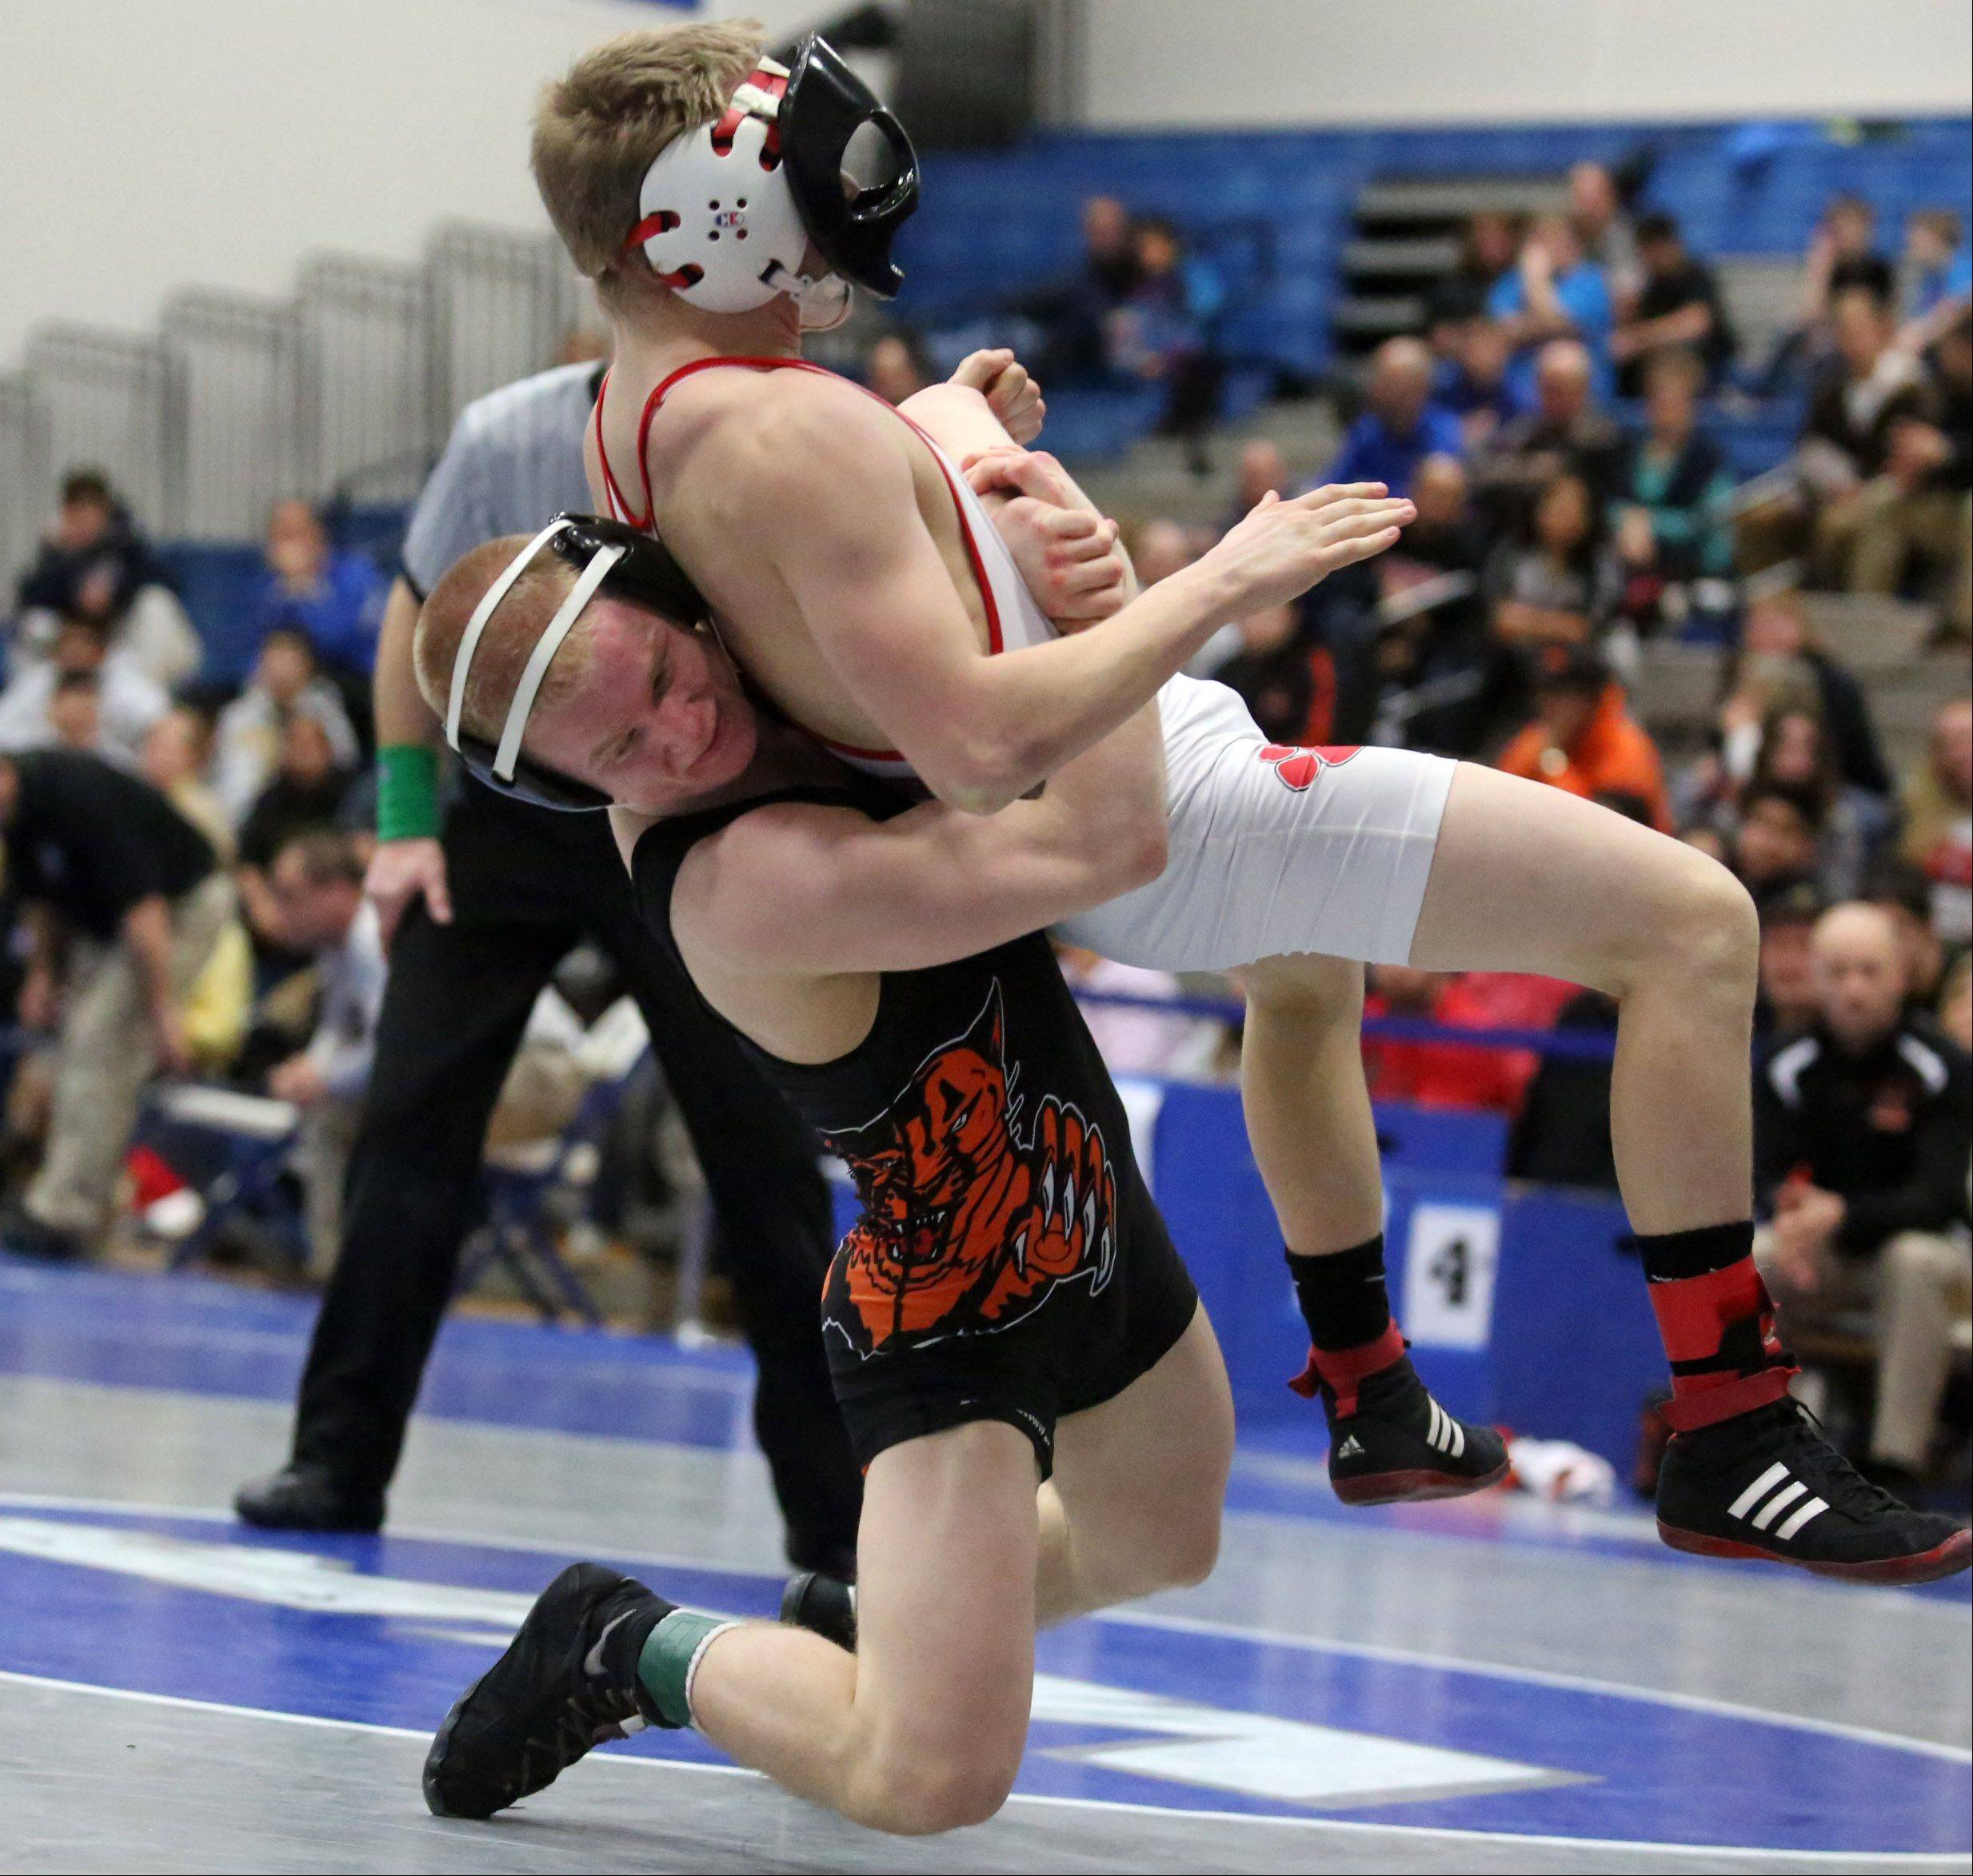 Libertyville's Steve Polakowski, left, wins the 126-pound final match against Grant's Noah Drabek at Saturday's North Suburban Conference wrestling meet in Vernon Hills.